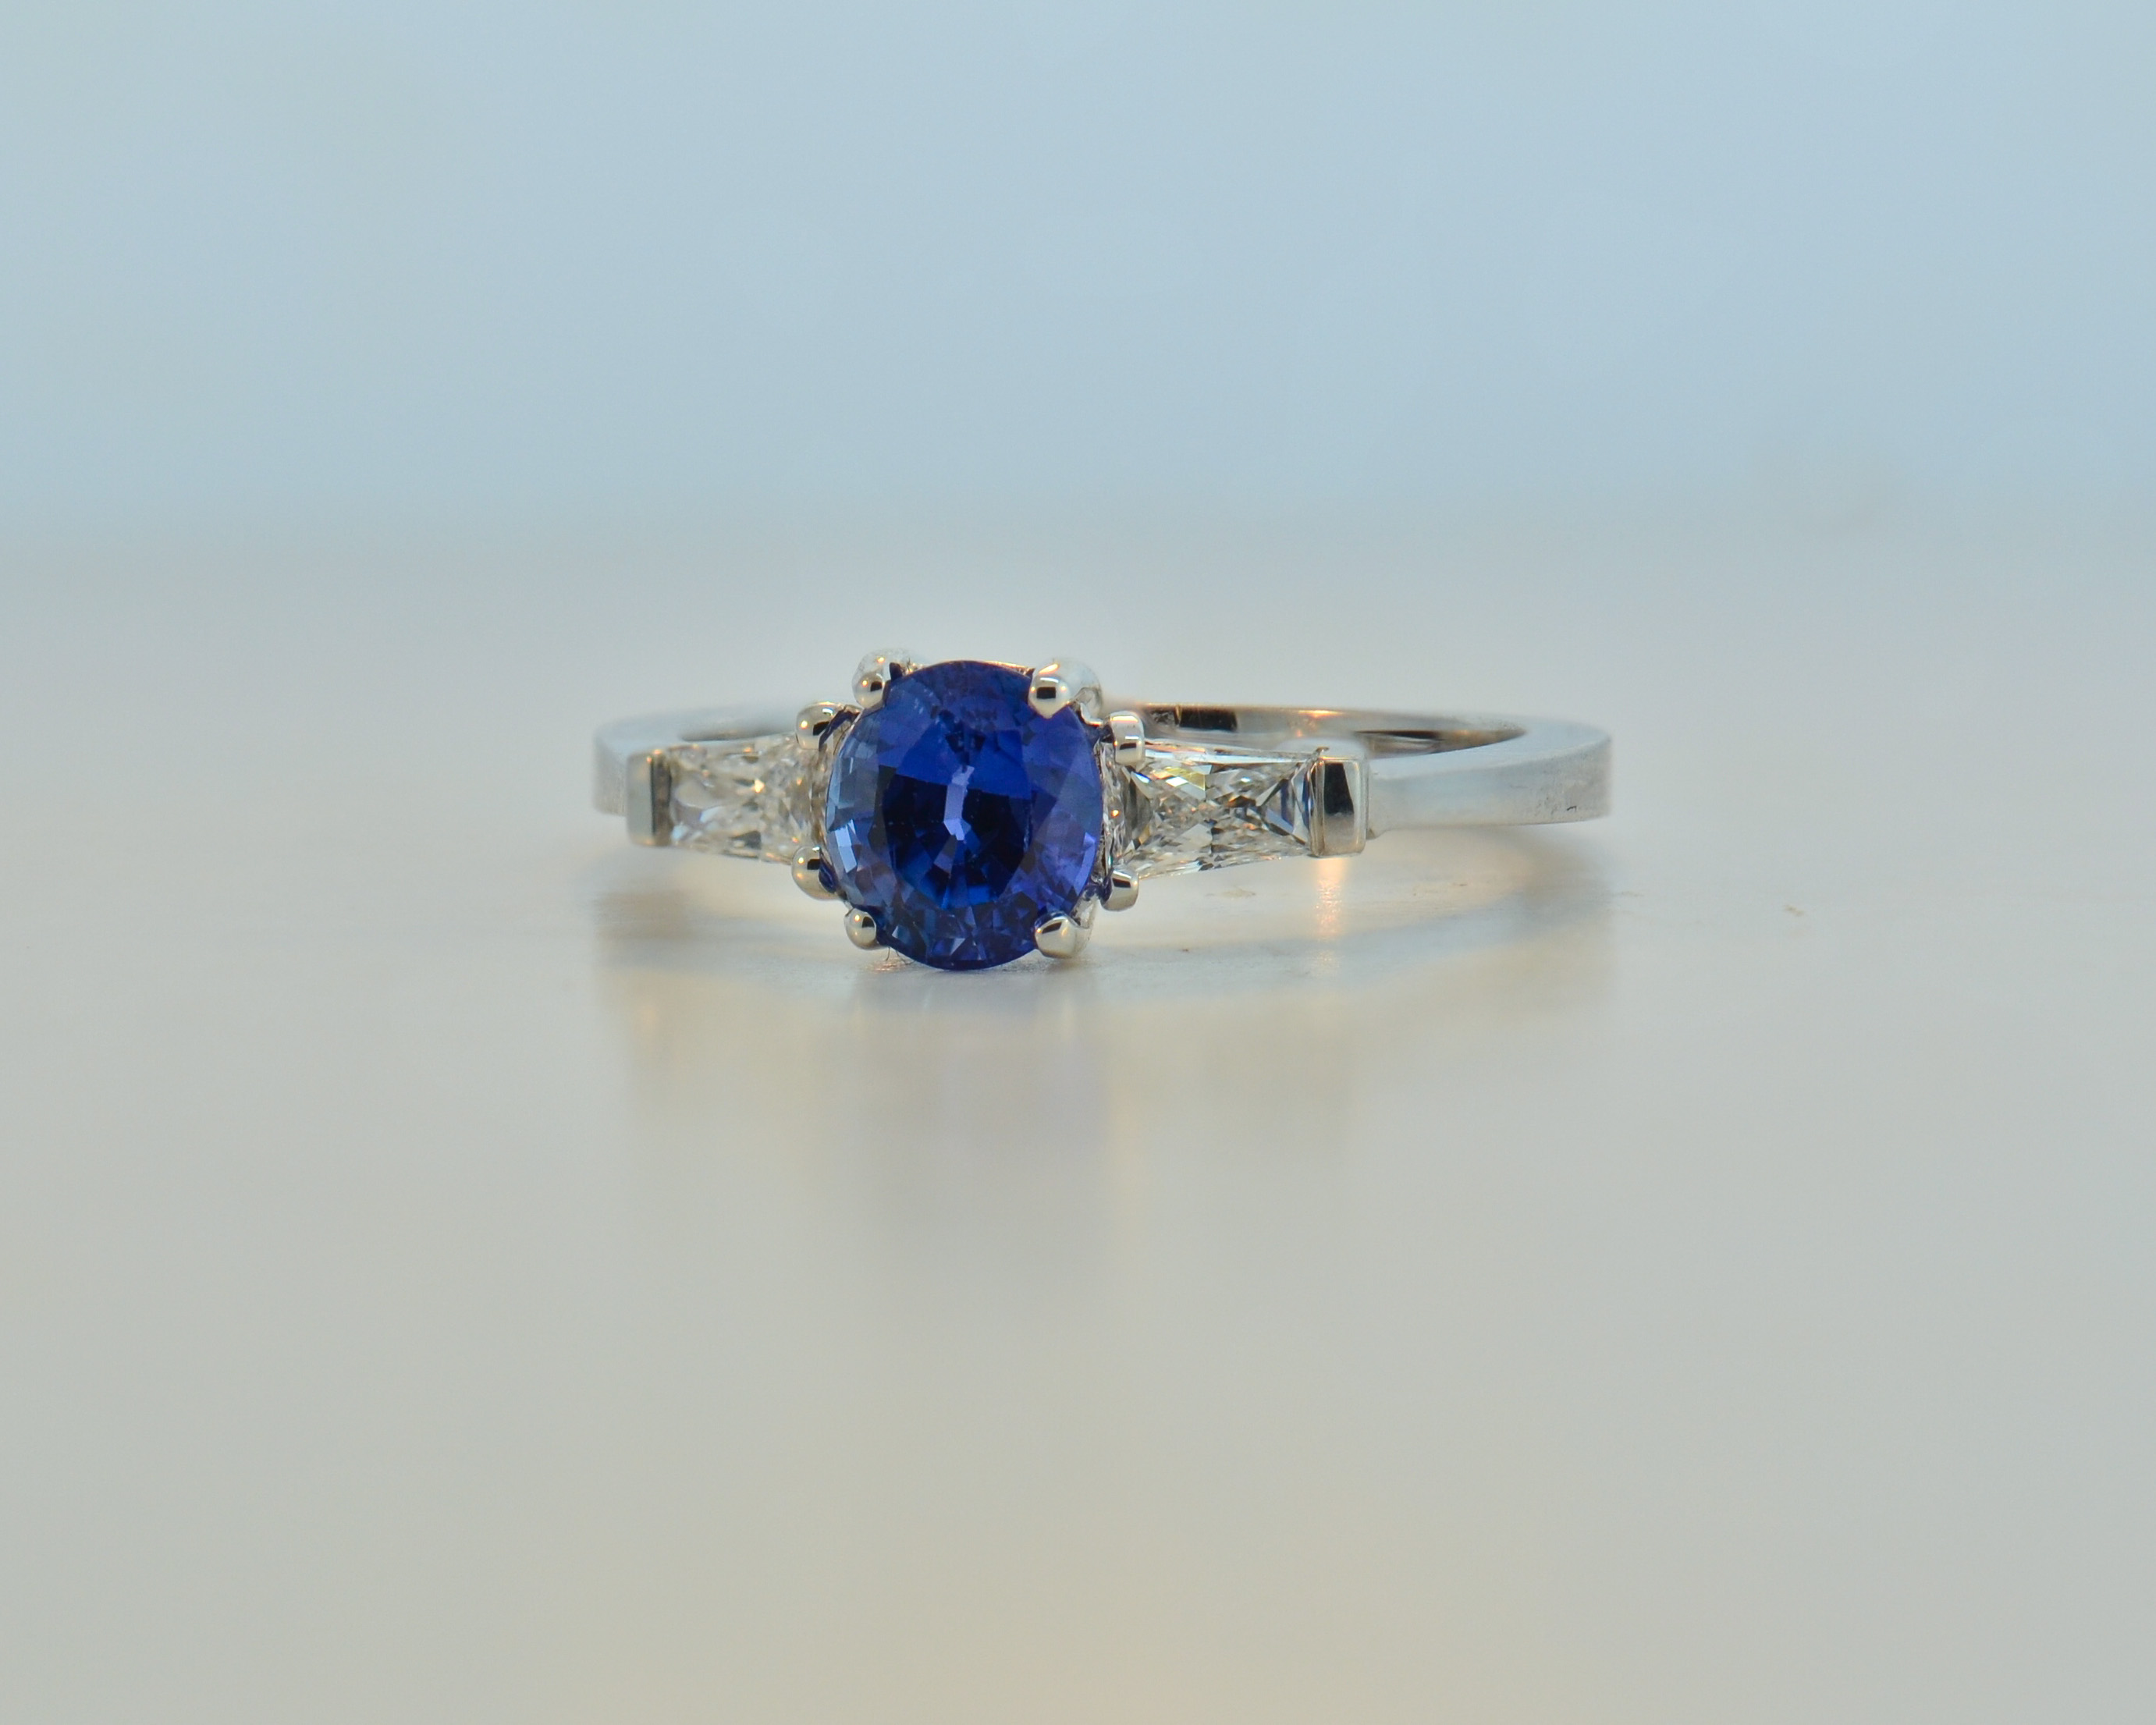 and lotfinder ring colour details diamond star s baguette hgk lot christie change a sapphire